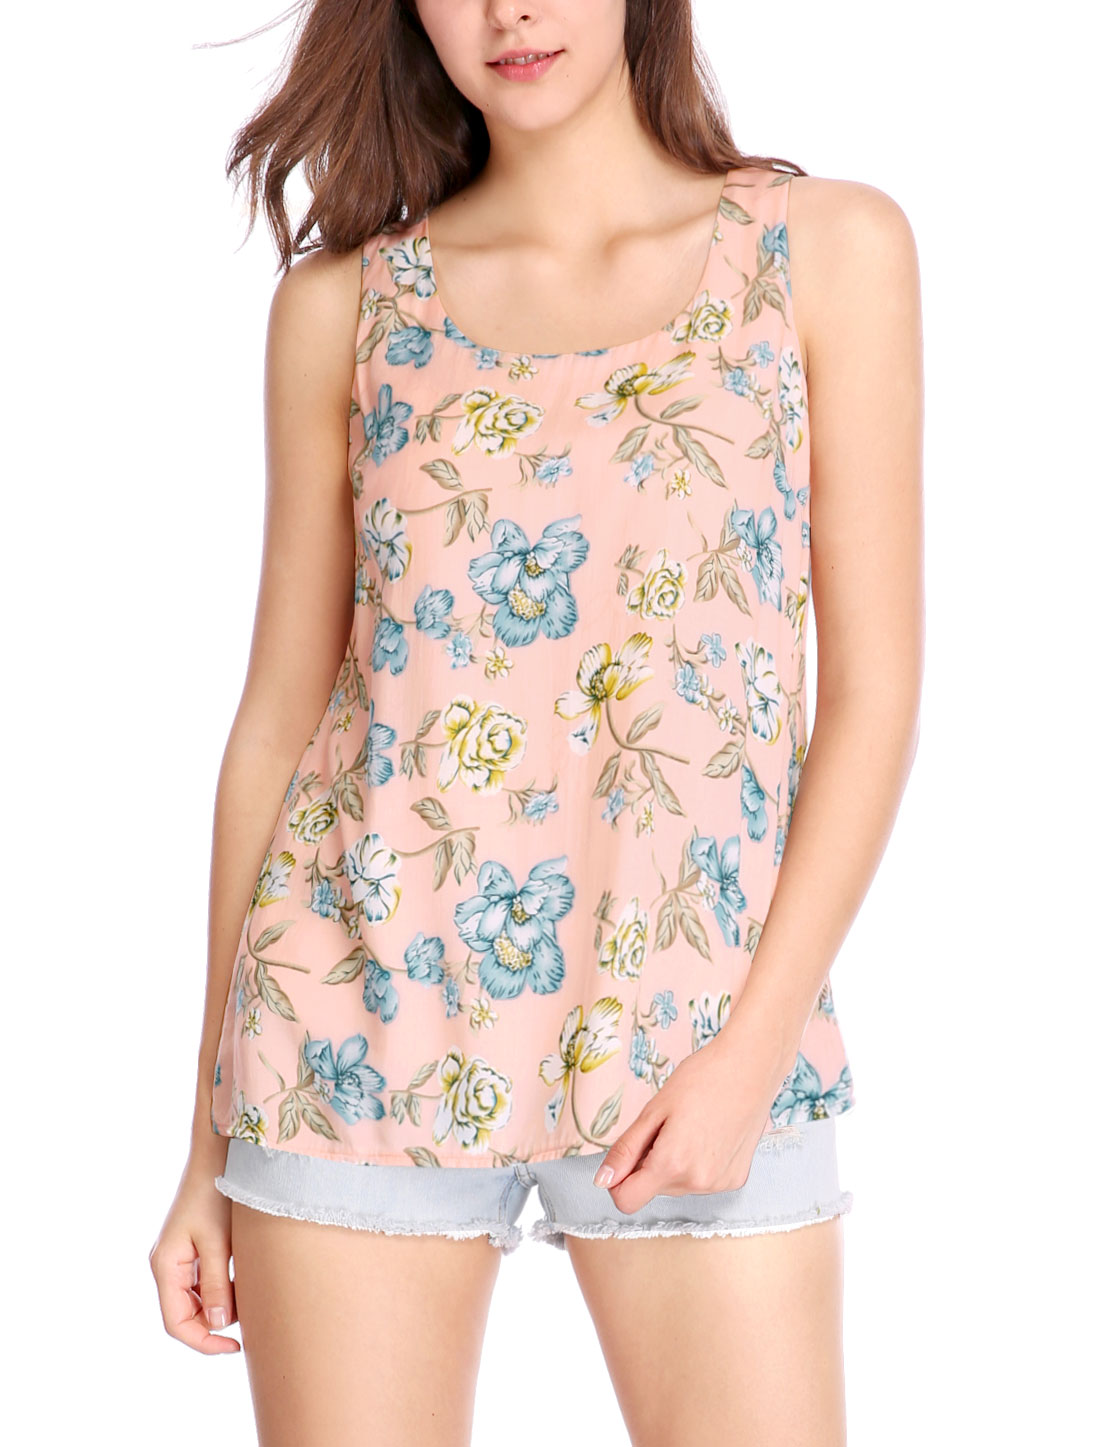 Women Floral Prints Sleeveless Scoop Neck Tank Top Pink XL